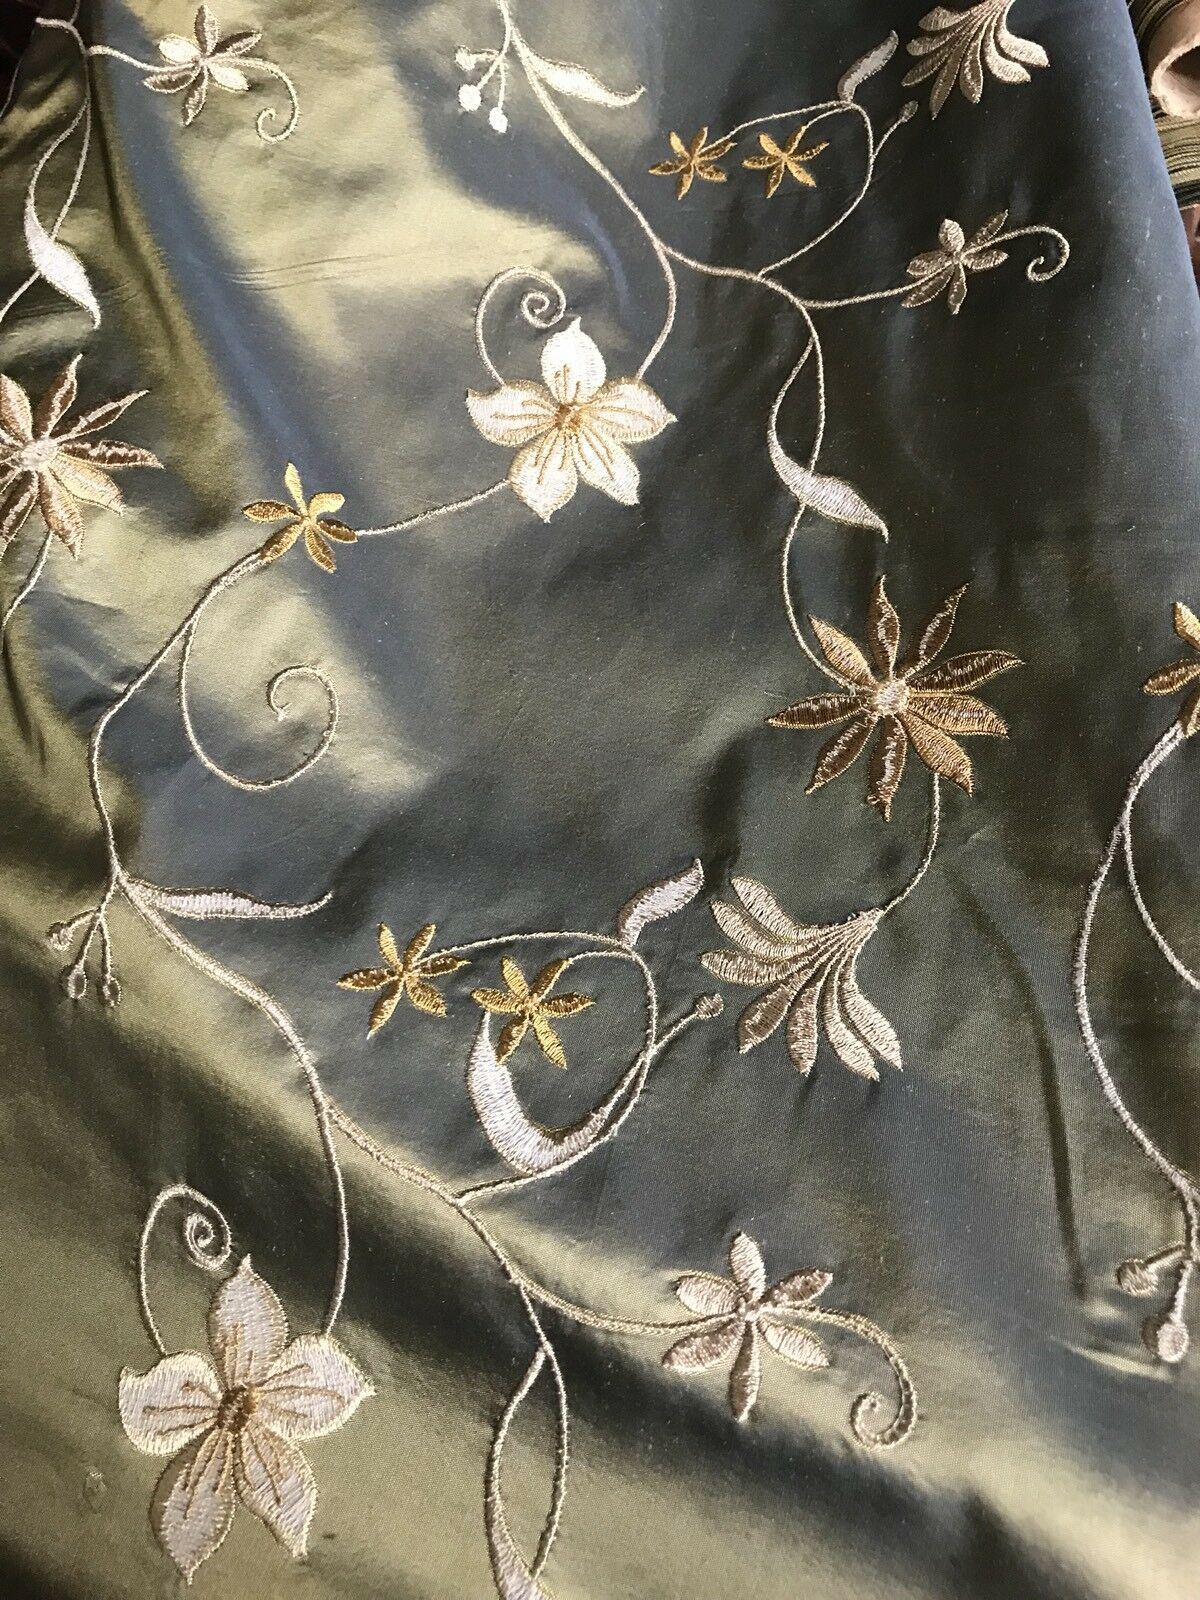 "SWATCH 100% Silk Taffeta Embroidered Floral Fabric - 4"" X 7"" Sample"